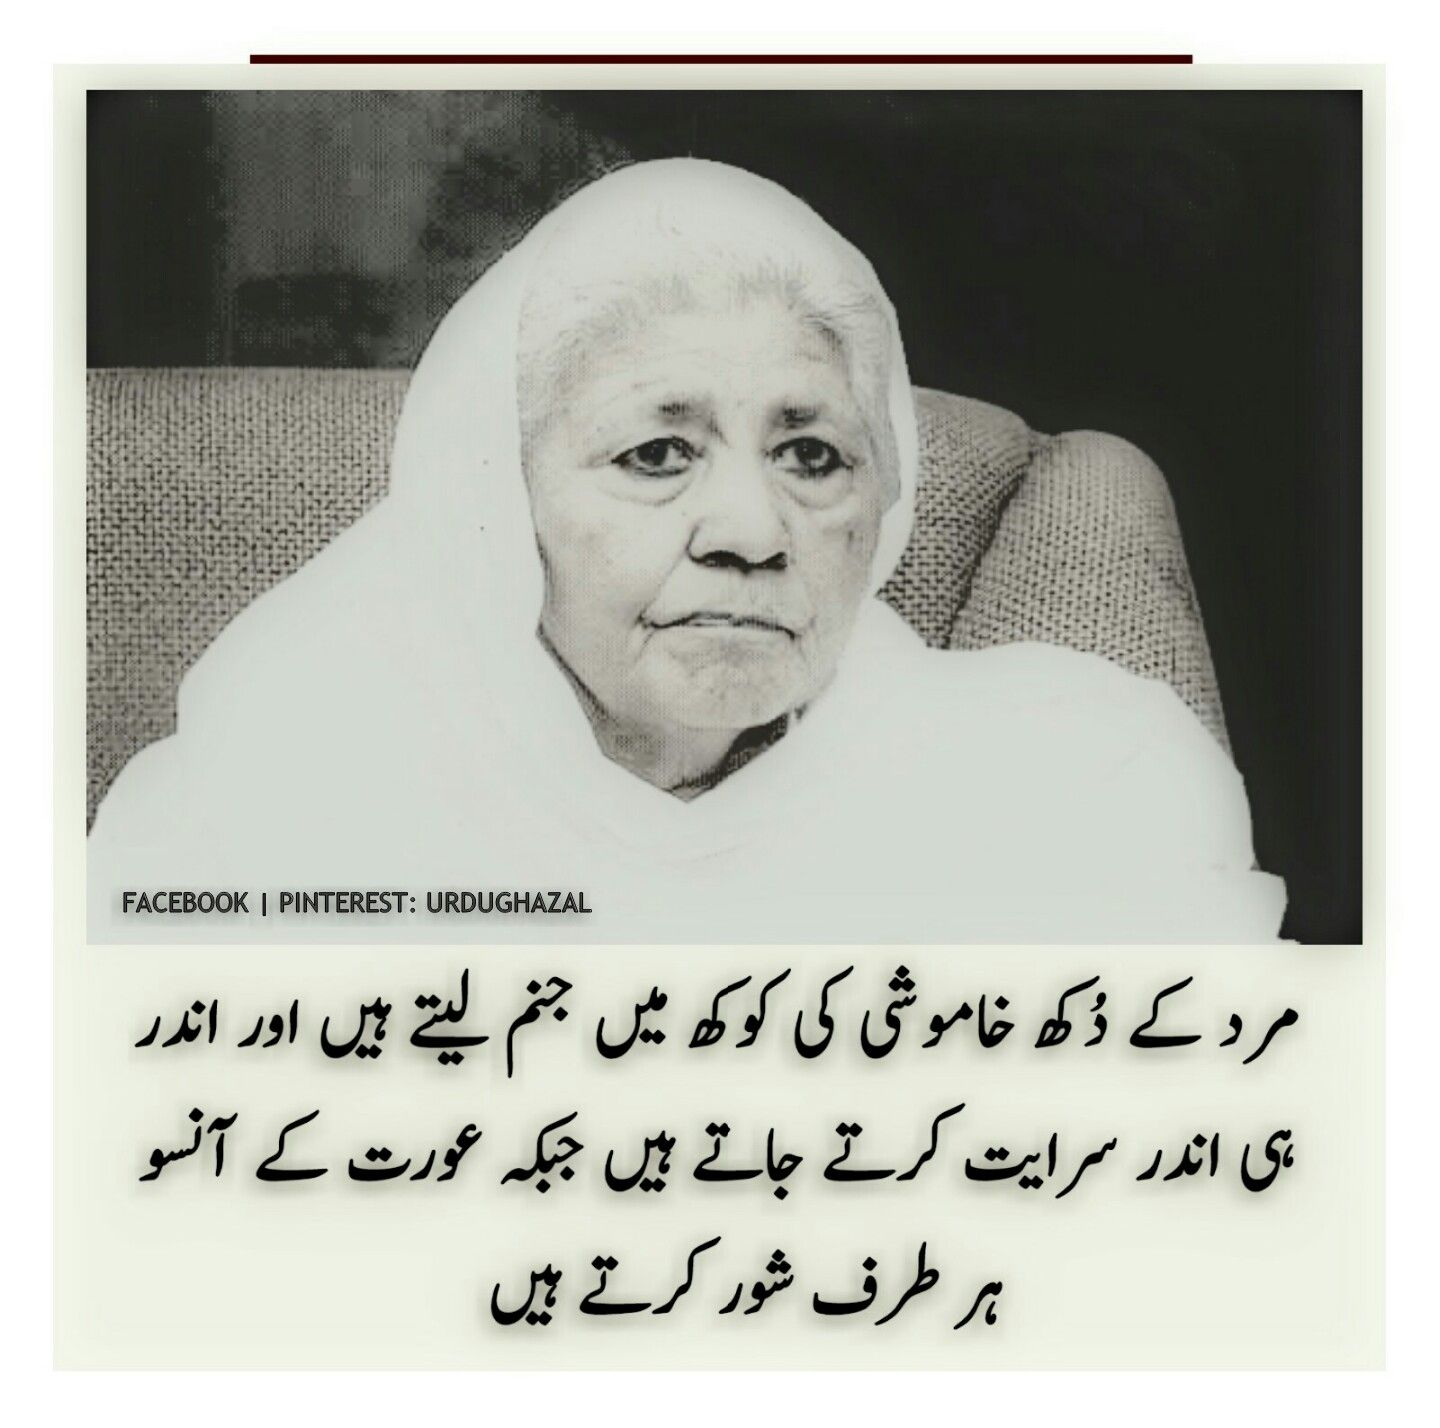 Bano Qudsia Dialogue بختاور بخاری Urdu Lovers Urdu Quotes Poetry Quotes Bano